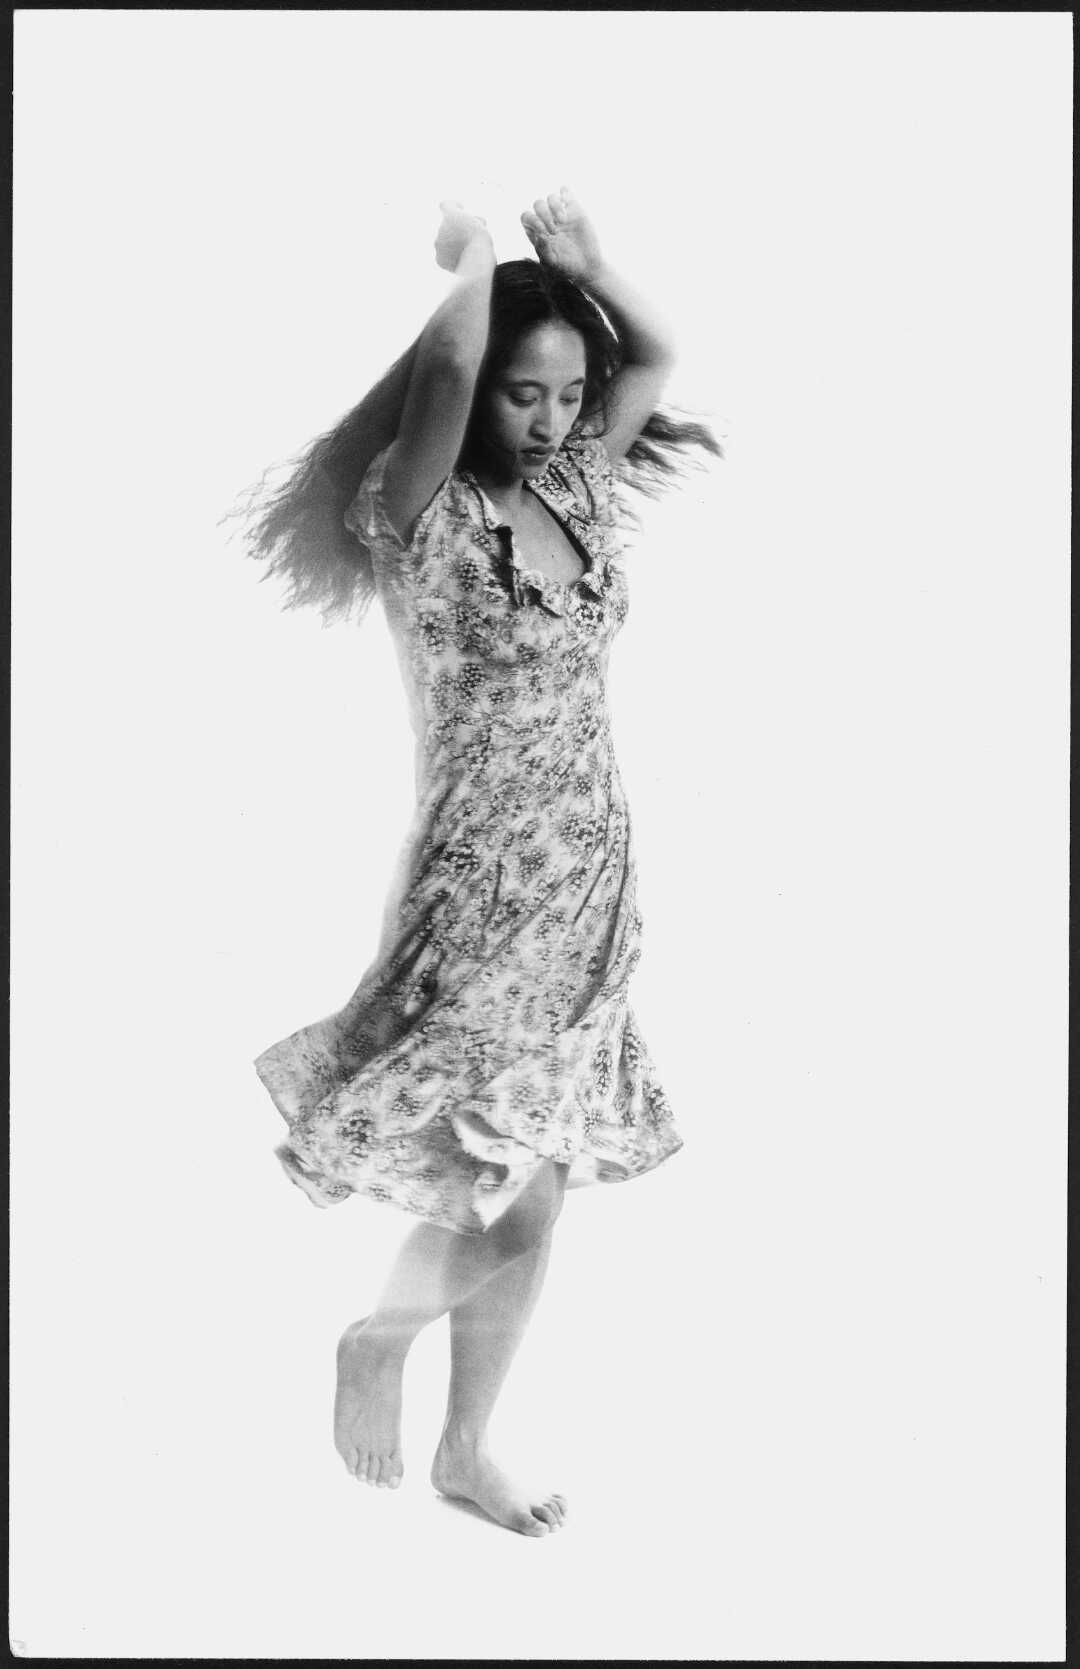 A woman with her arms above her head dancing. Her dress is swooshing around her.